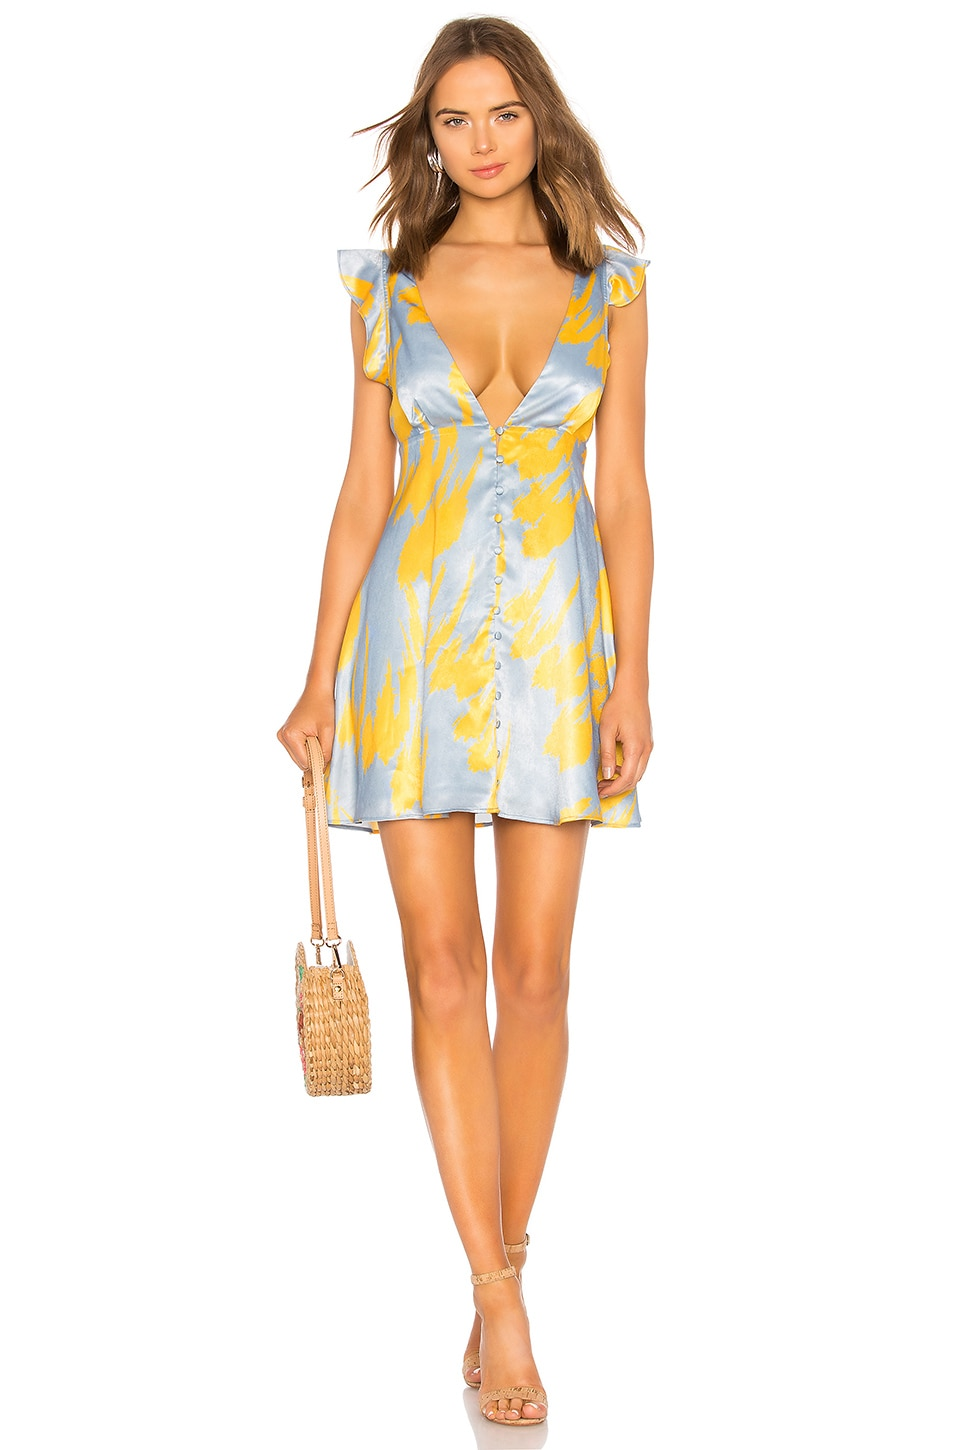 House of Harlow 1960 x REVOLVE Viona Dress in Blue Feather